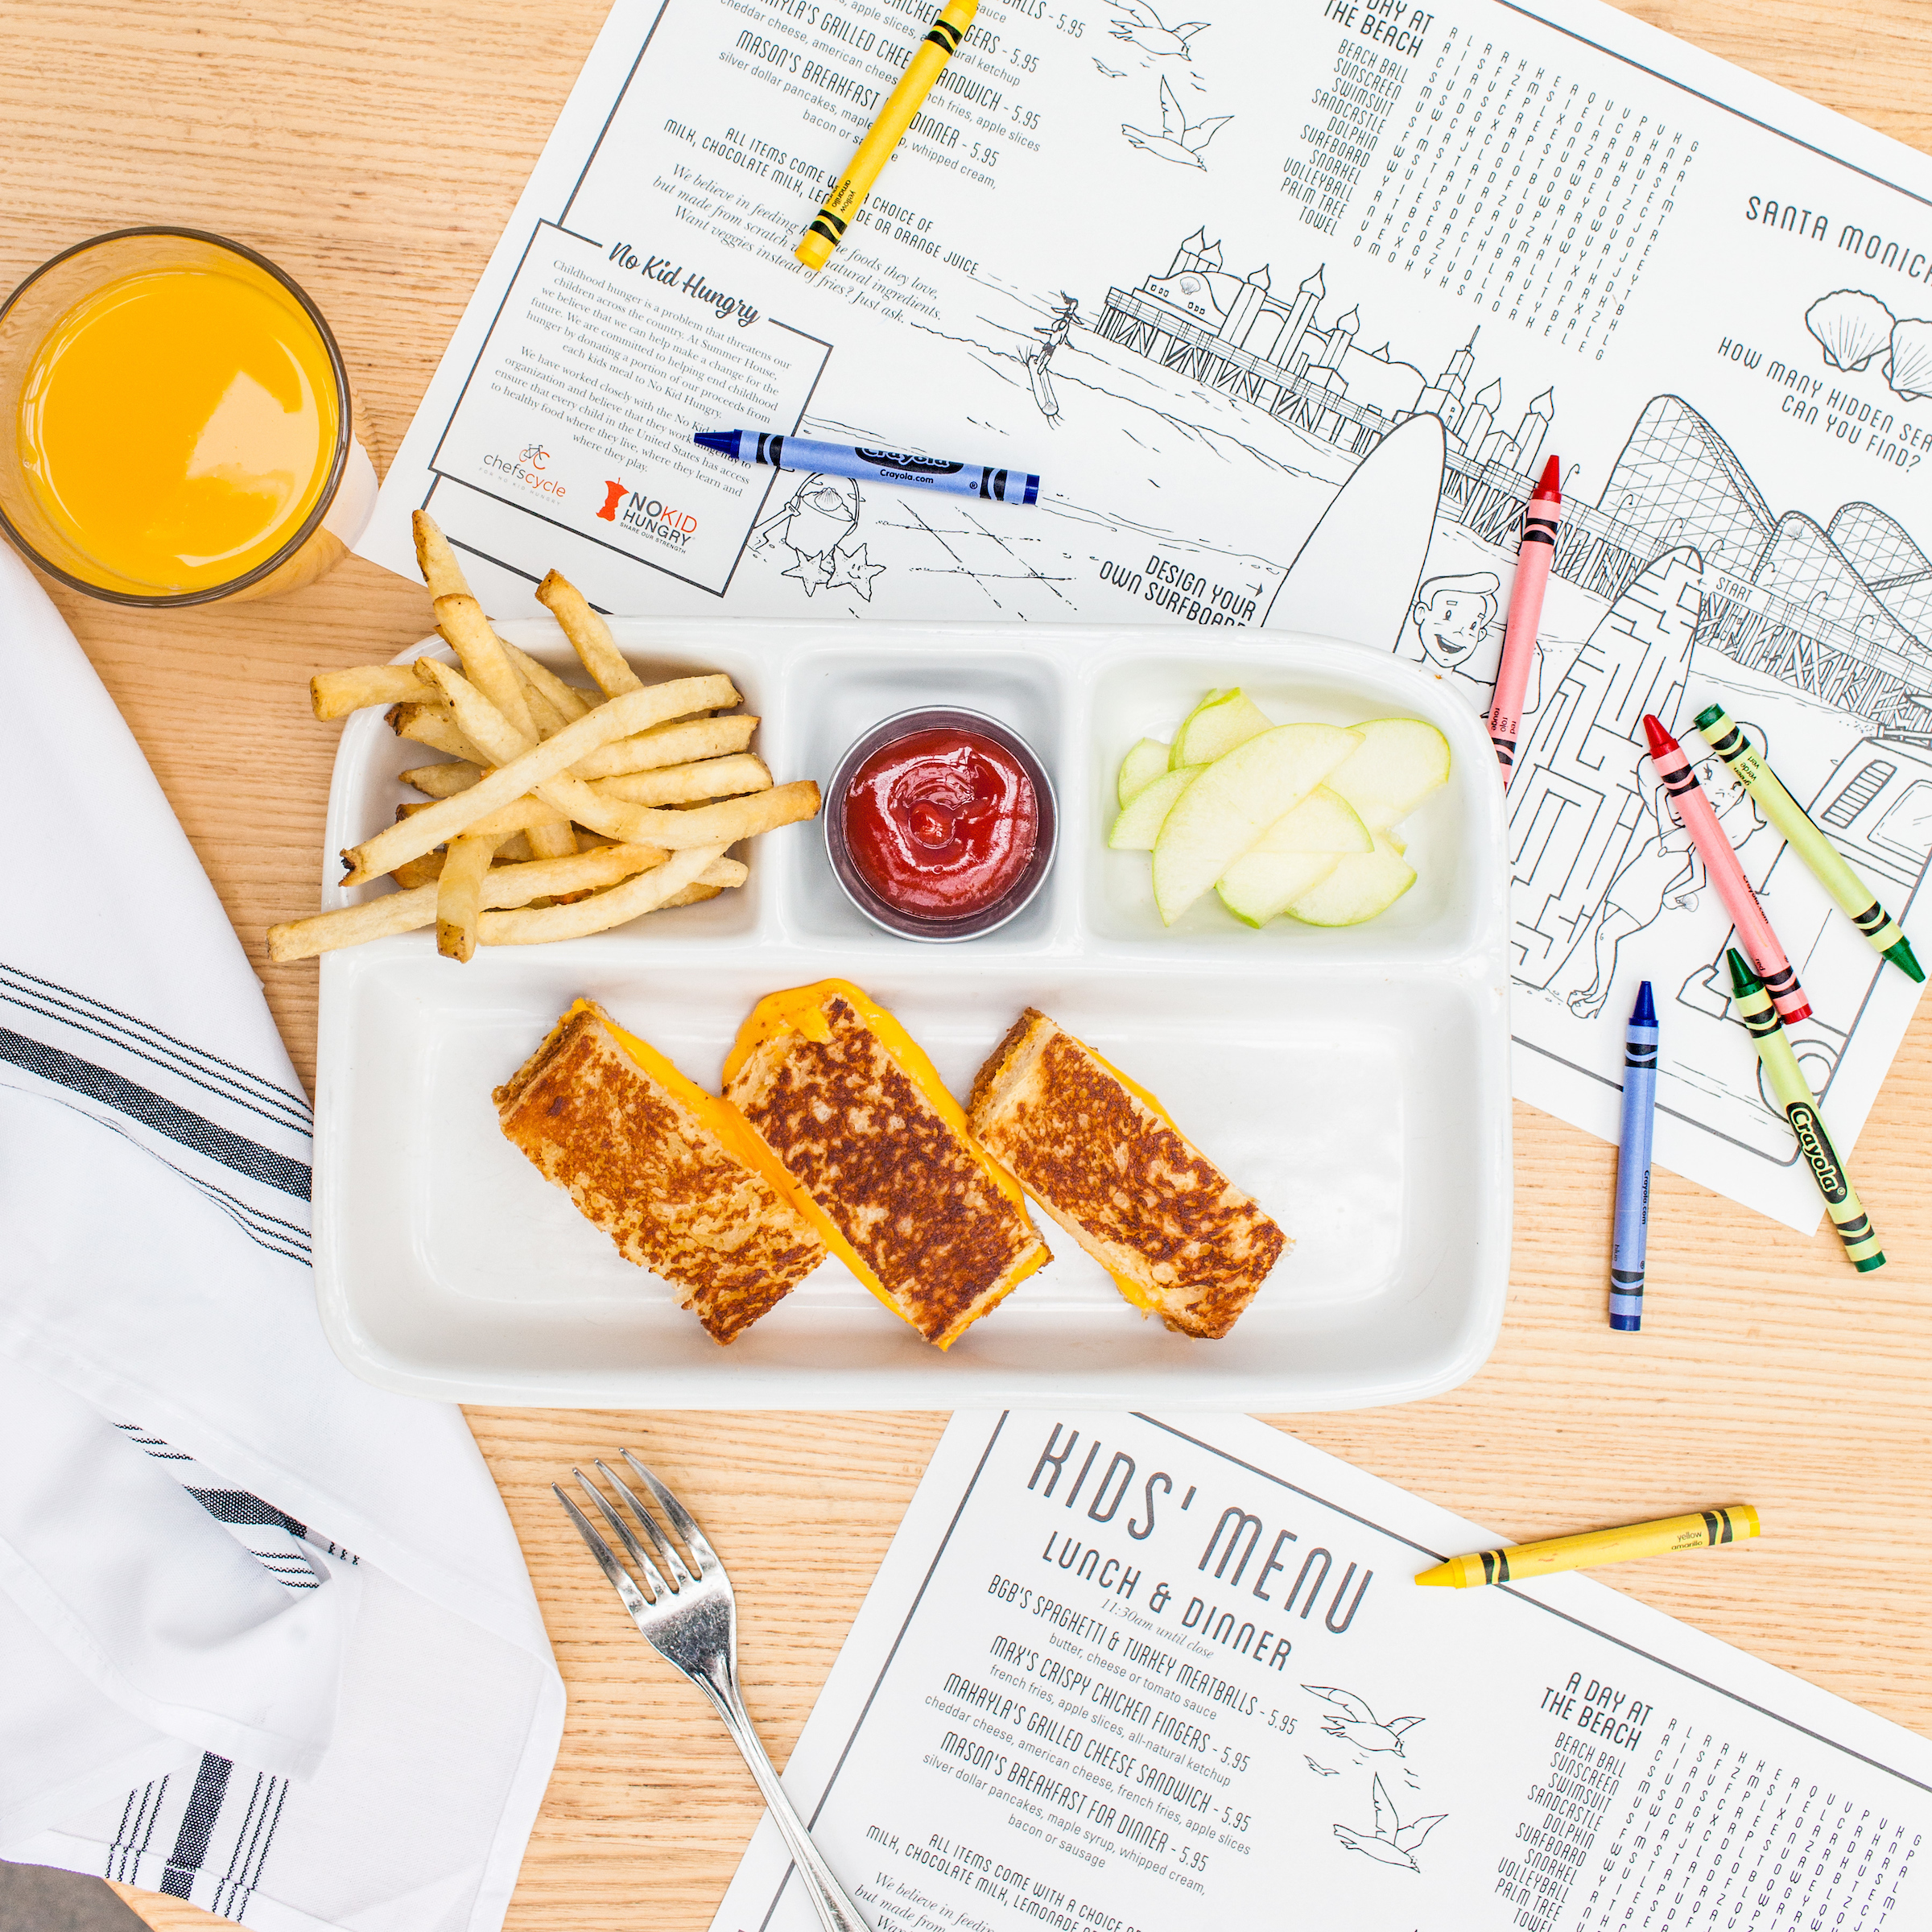 An overhead shot of the grilled cheese kid's meal at Summer House with the kids menus below it and crayons scattered about